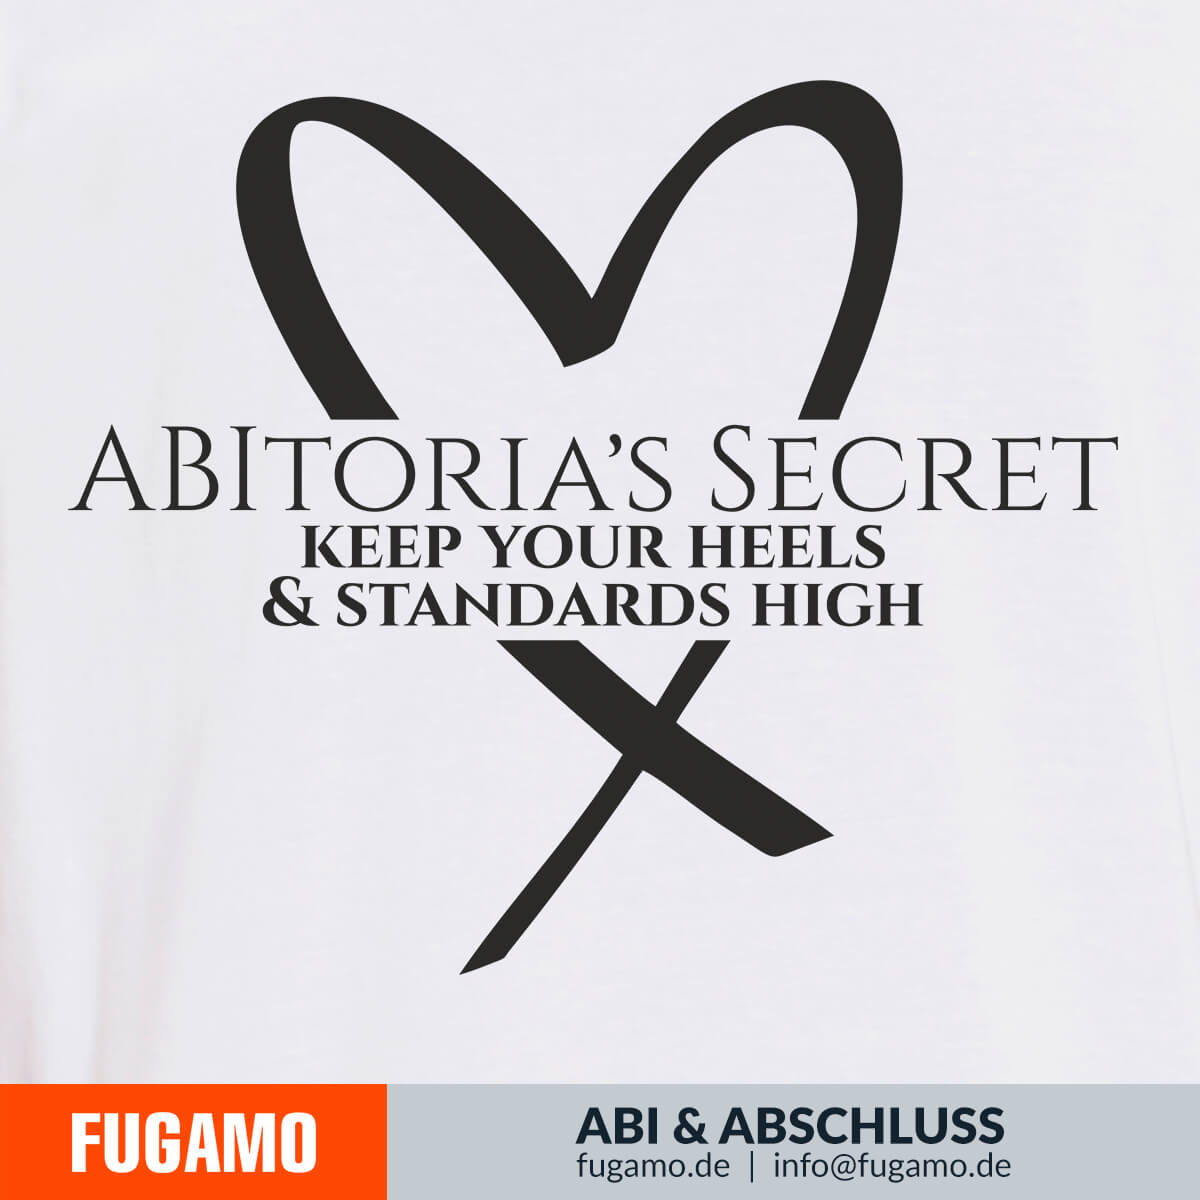 ABItoria's Secret - 04 - Keep your heels and standards high